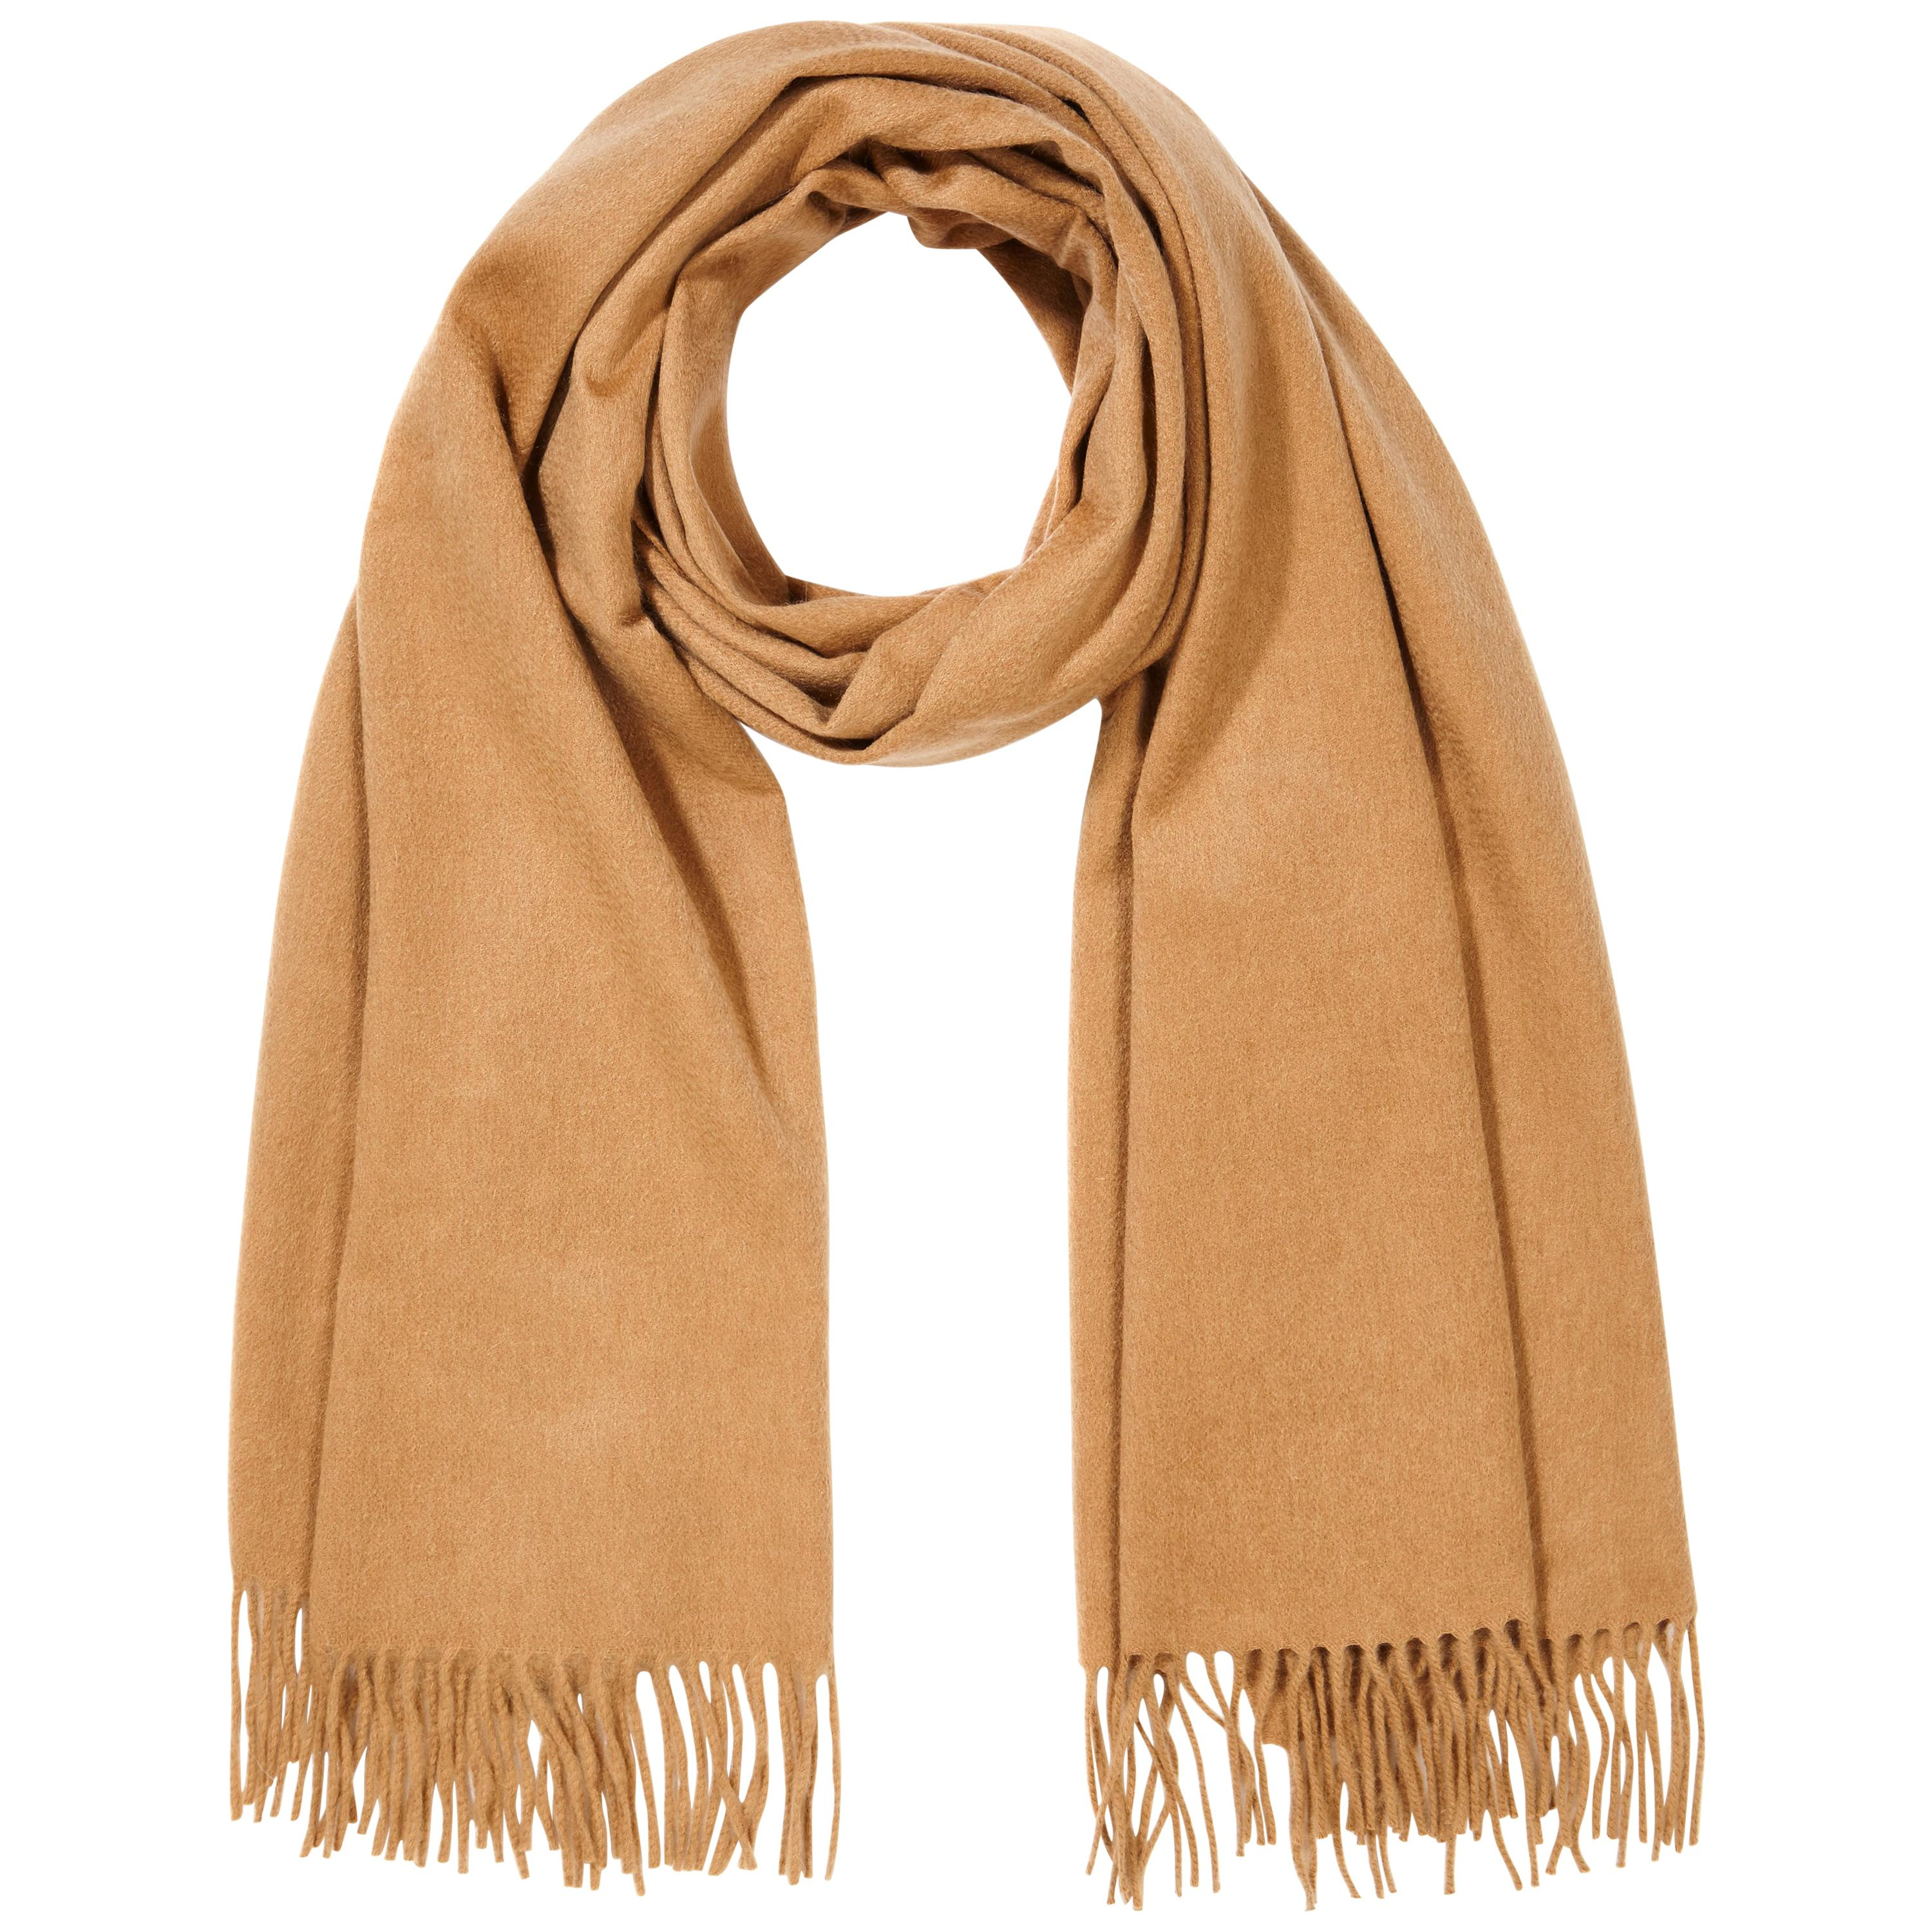 Scottish 100% Cashmere Shawl in Camel Tan - Brand New